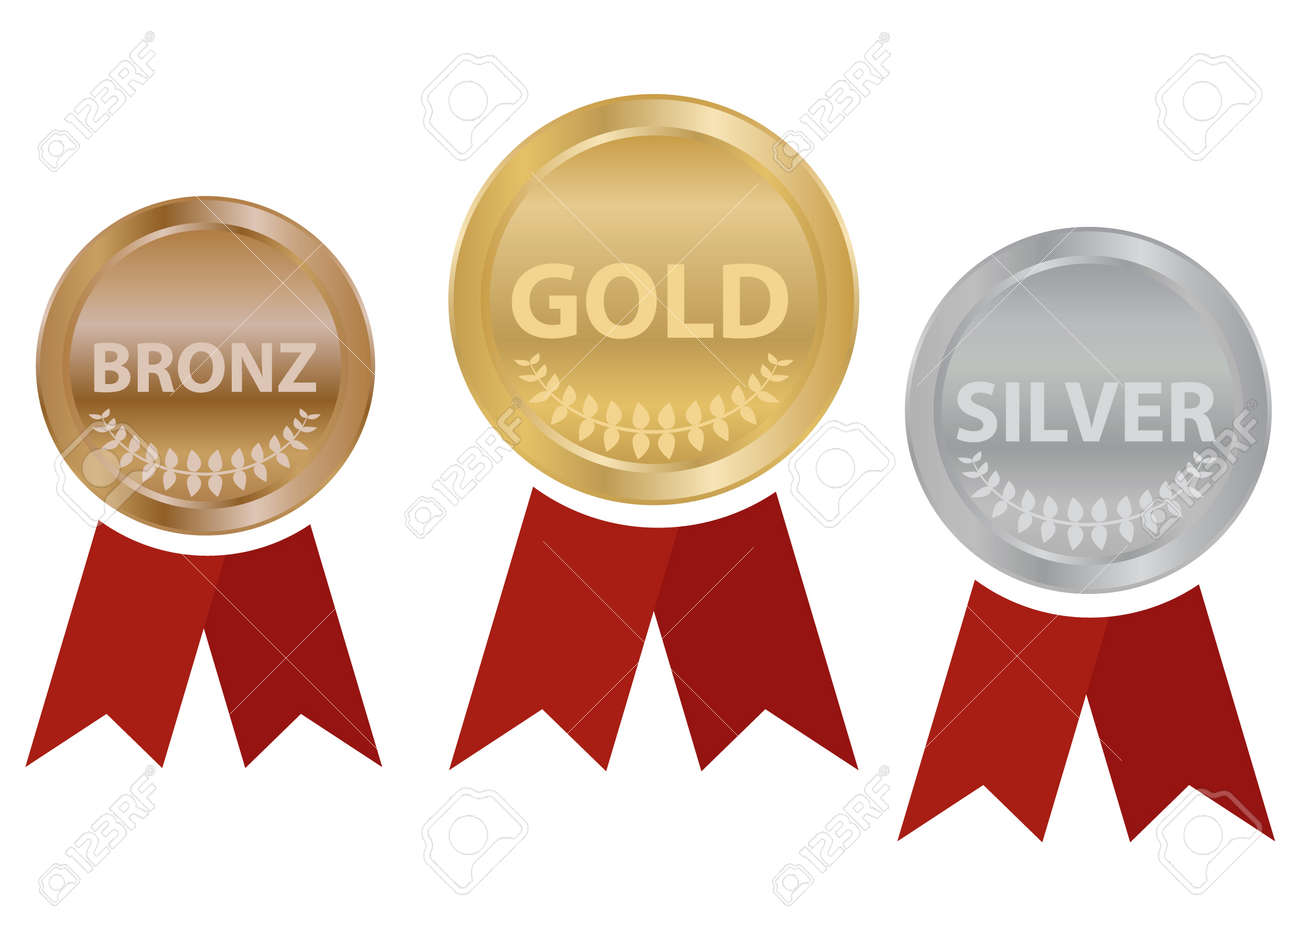 Sports medals with ribbons, gold, silver and bronze sports medal. Vector illustration. Vector. - 162890928